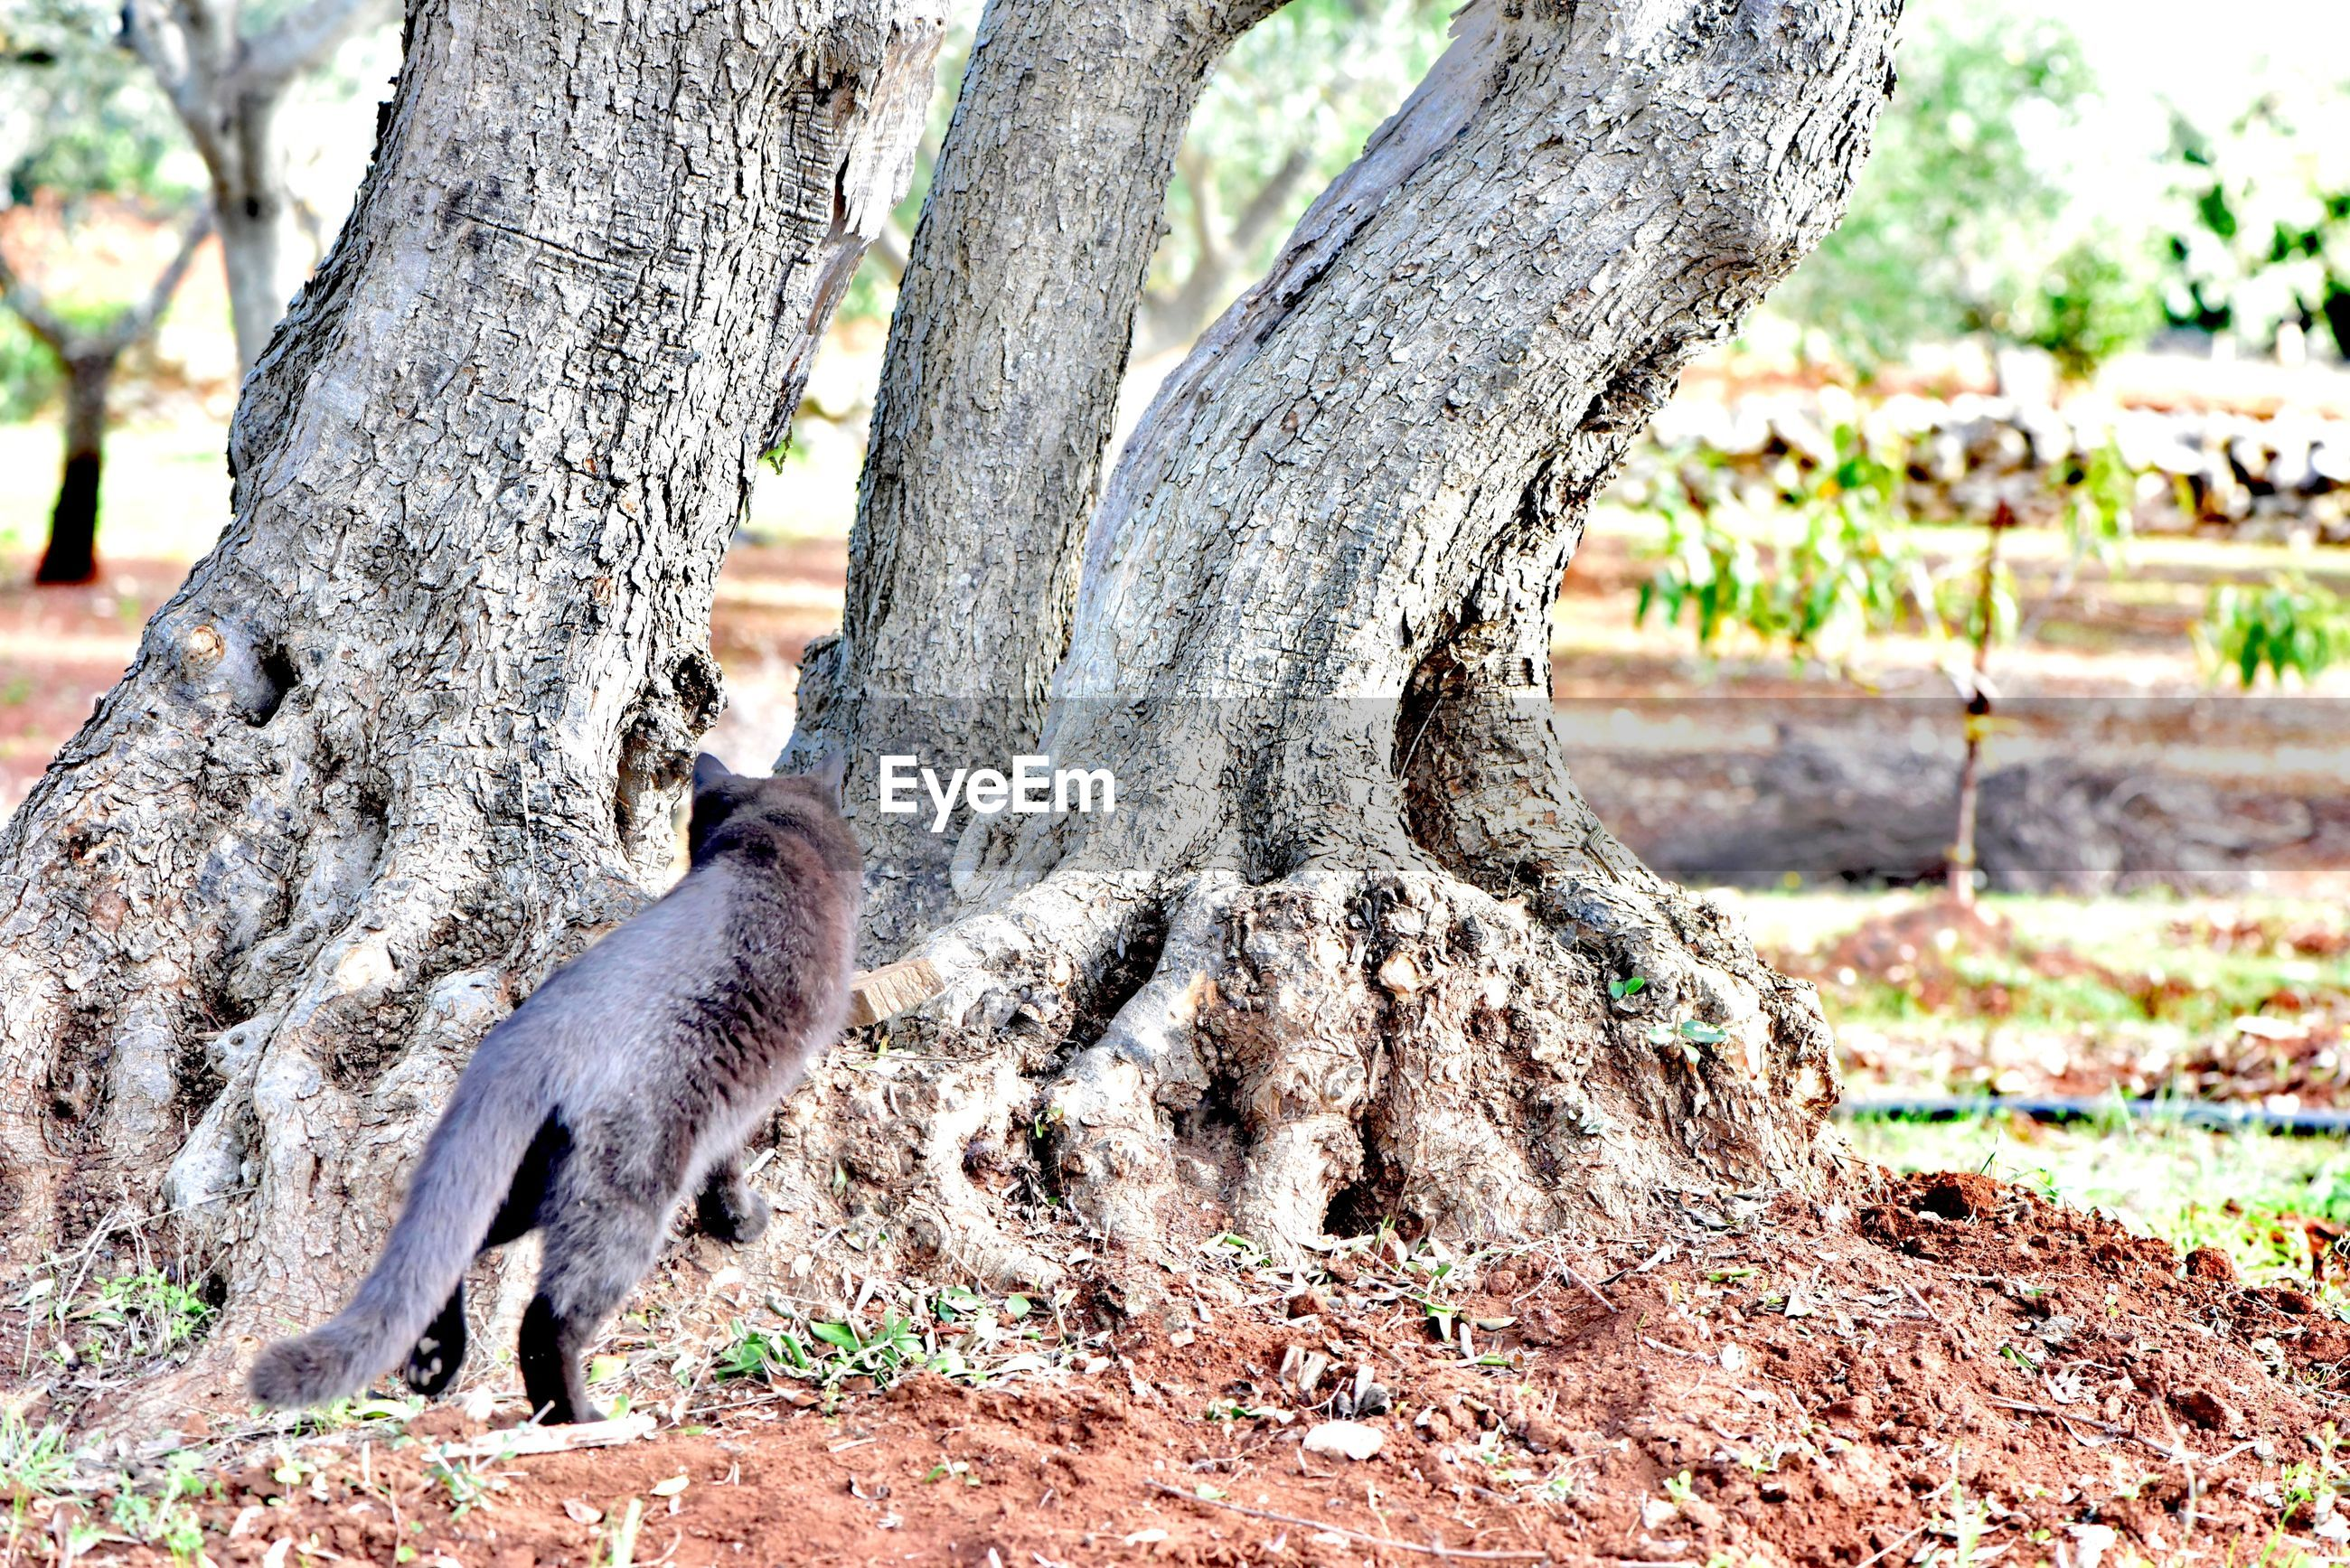 animal themes, animal, tree, animal wildlife, animals in the wild, trunk, tree trunk, plant, mammal, vertebrate, no people, nature, one animal, land, day, focus on foreground, rodent, field, outdoors, sunlight, herbivorous